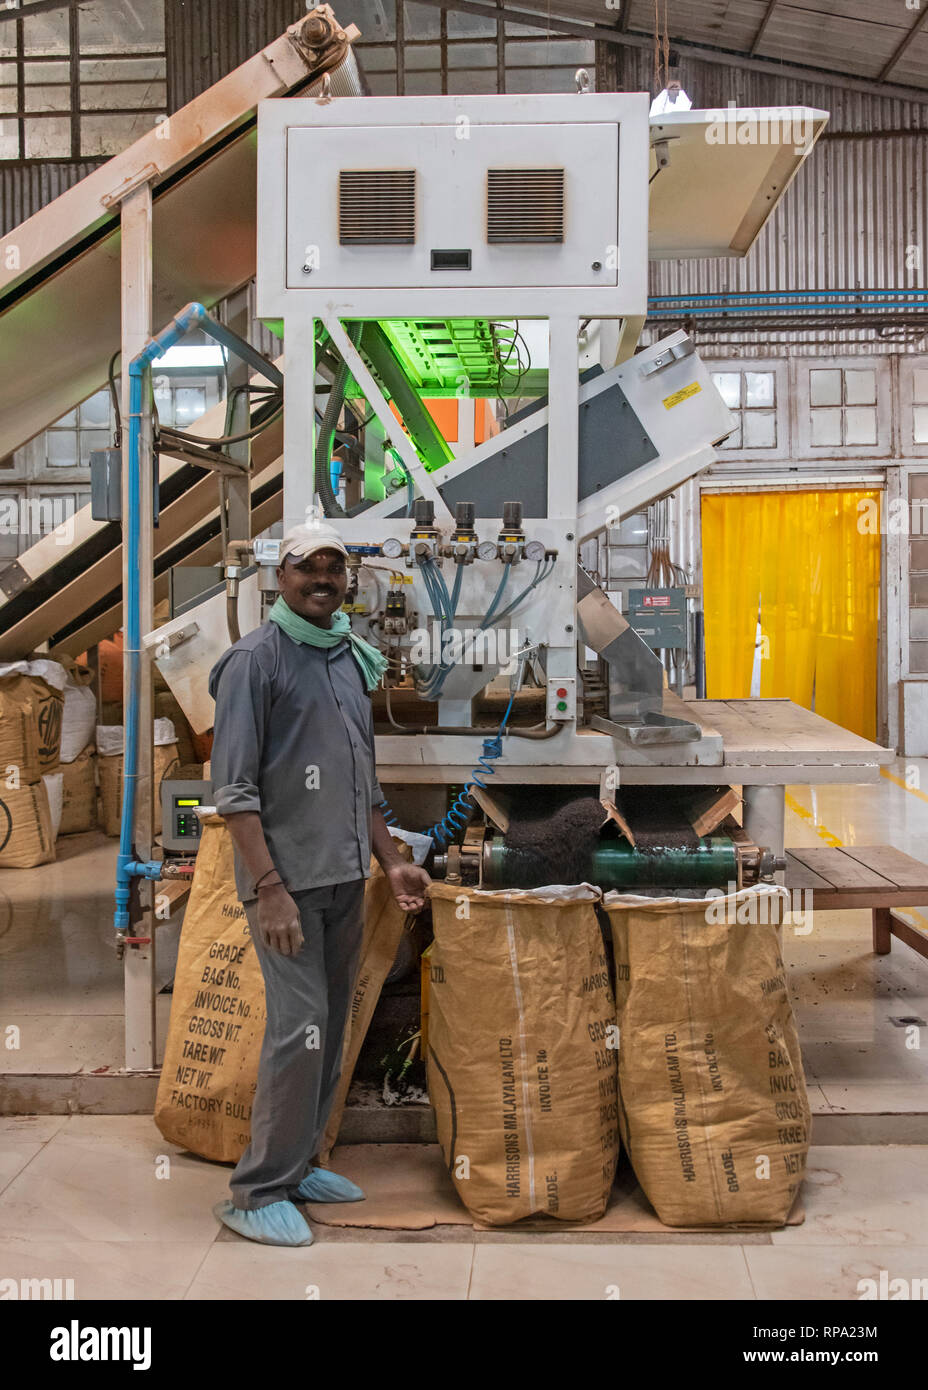 A worker at work in the Lockhart tea factory using new macinery smiling posing for the camera. Stock Photo